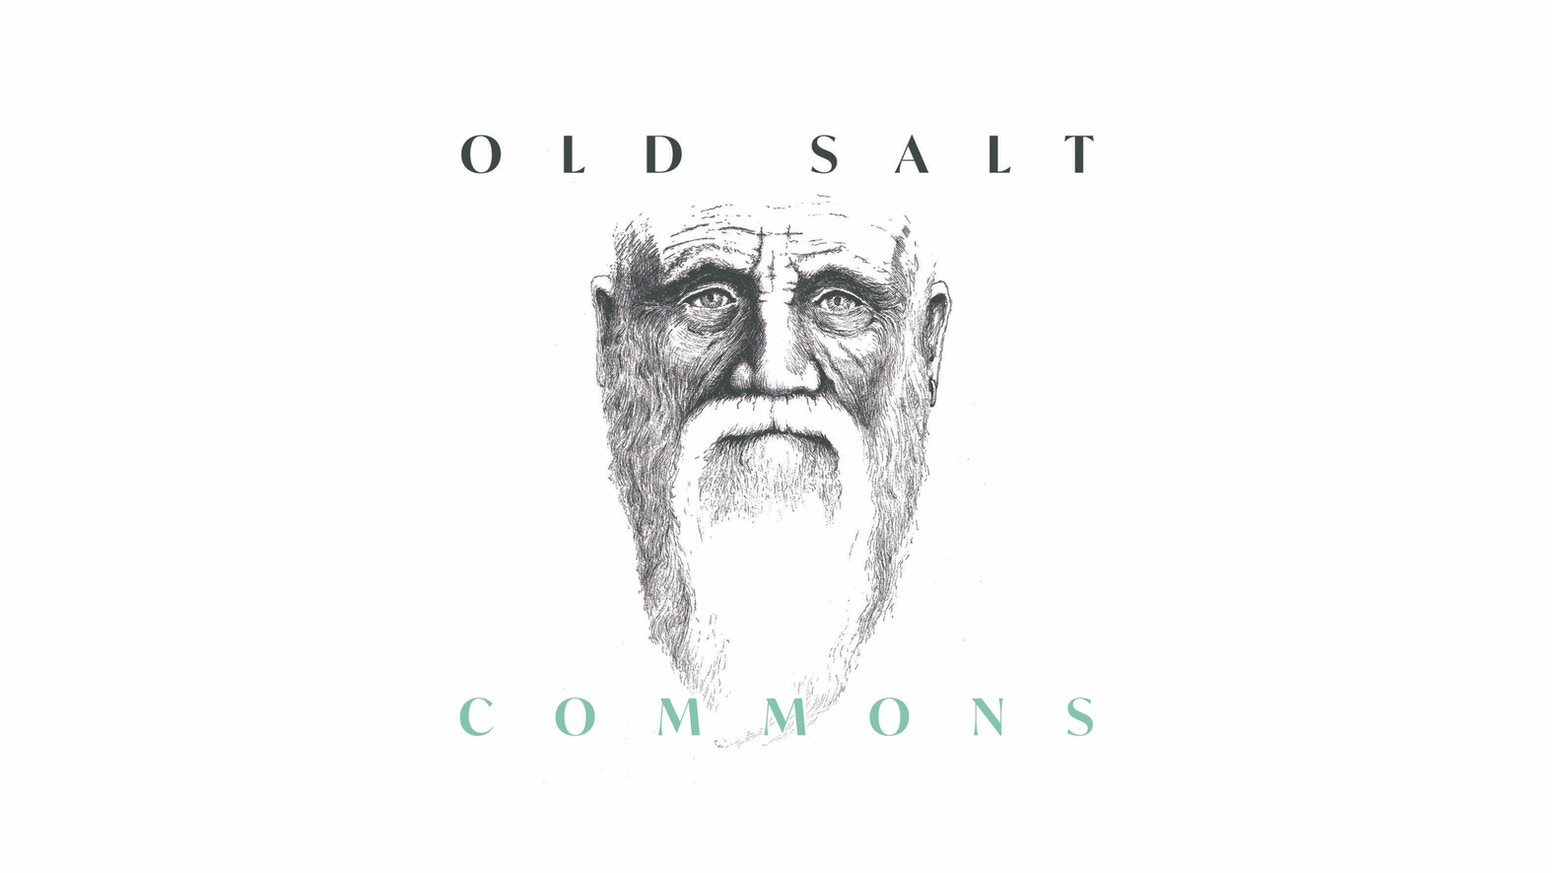 We're crowdfunding to get your support for realizing our second album 'Commons.'